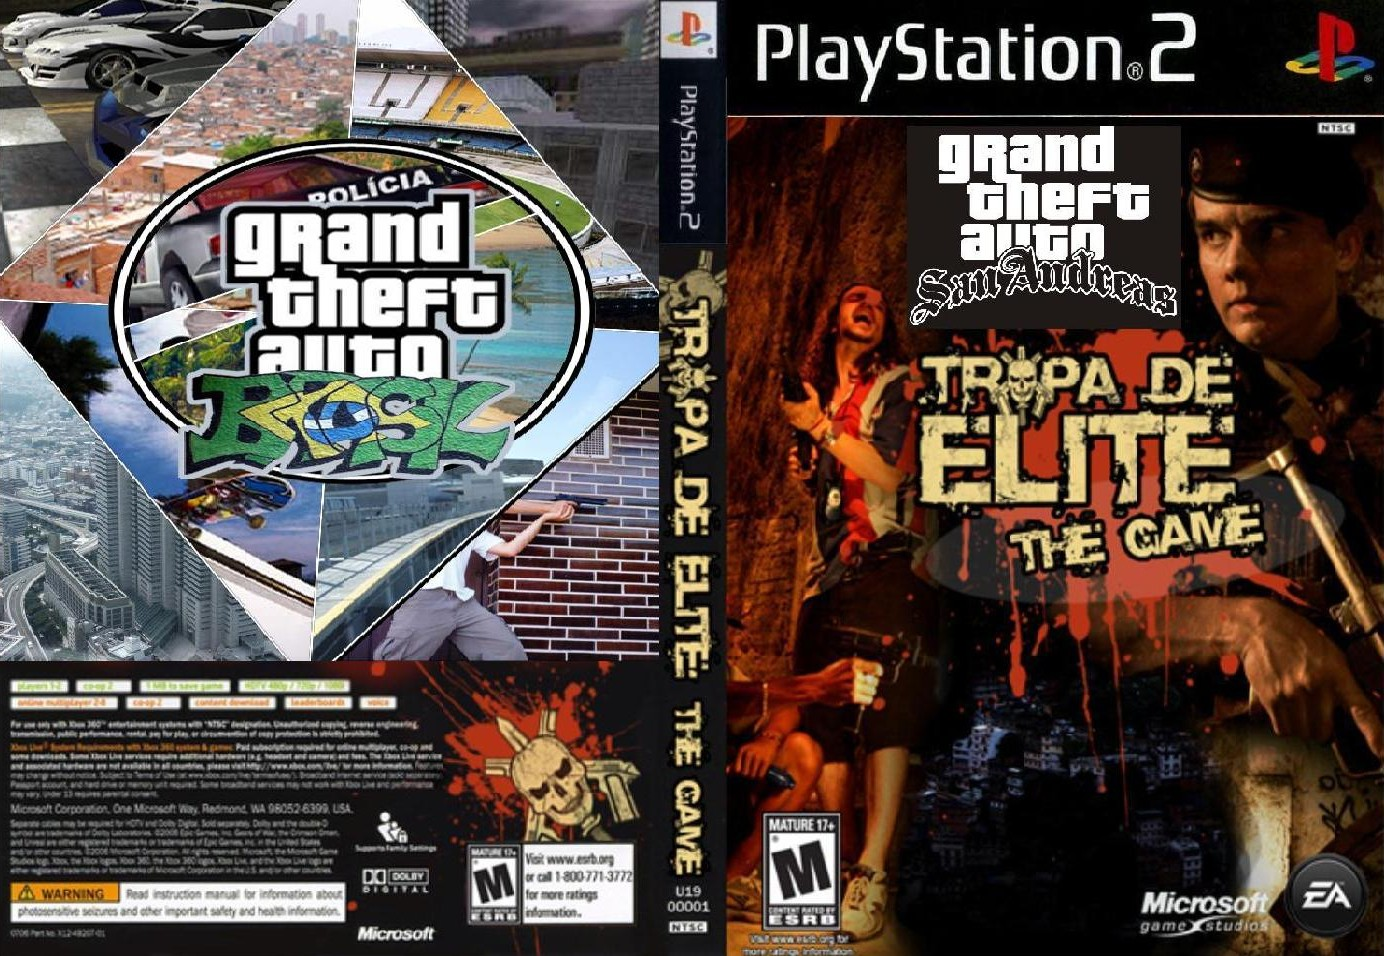 Megapost gta grand theft auto san andreas tropa de elite